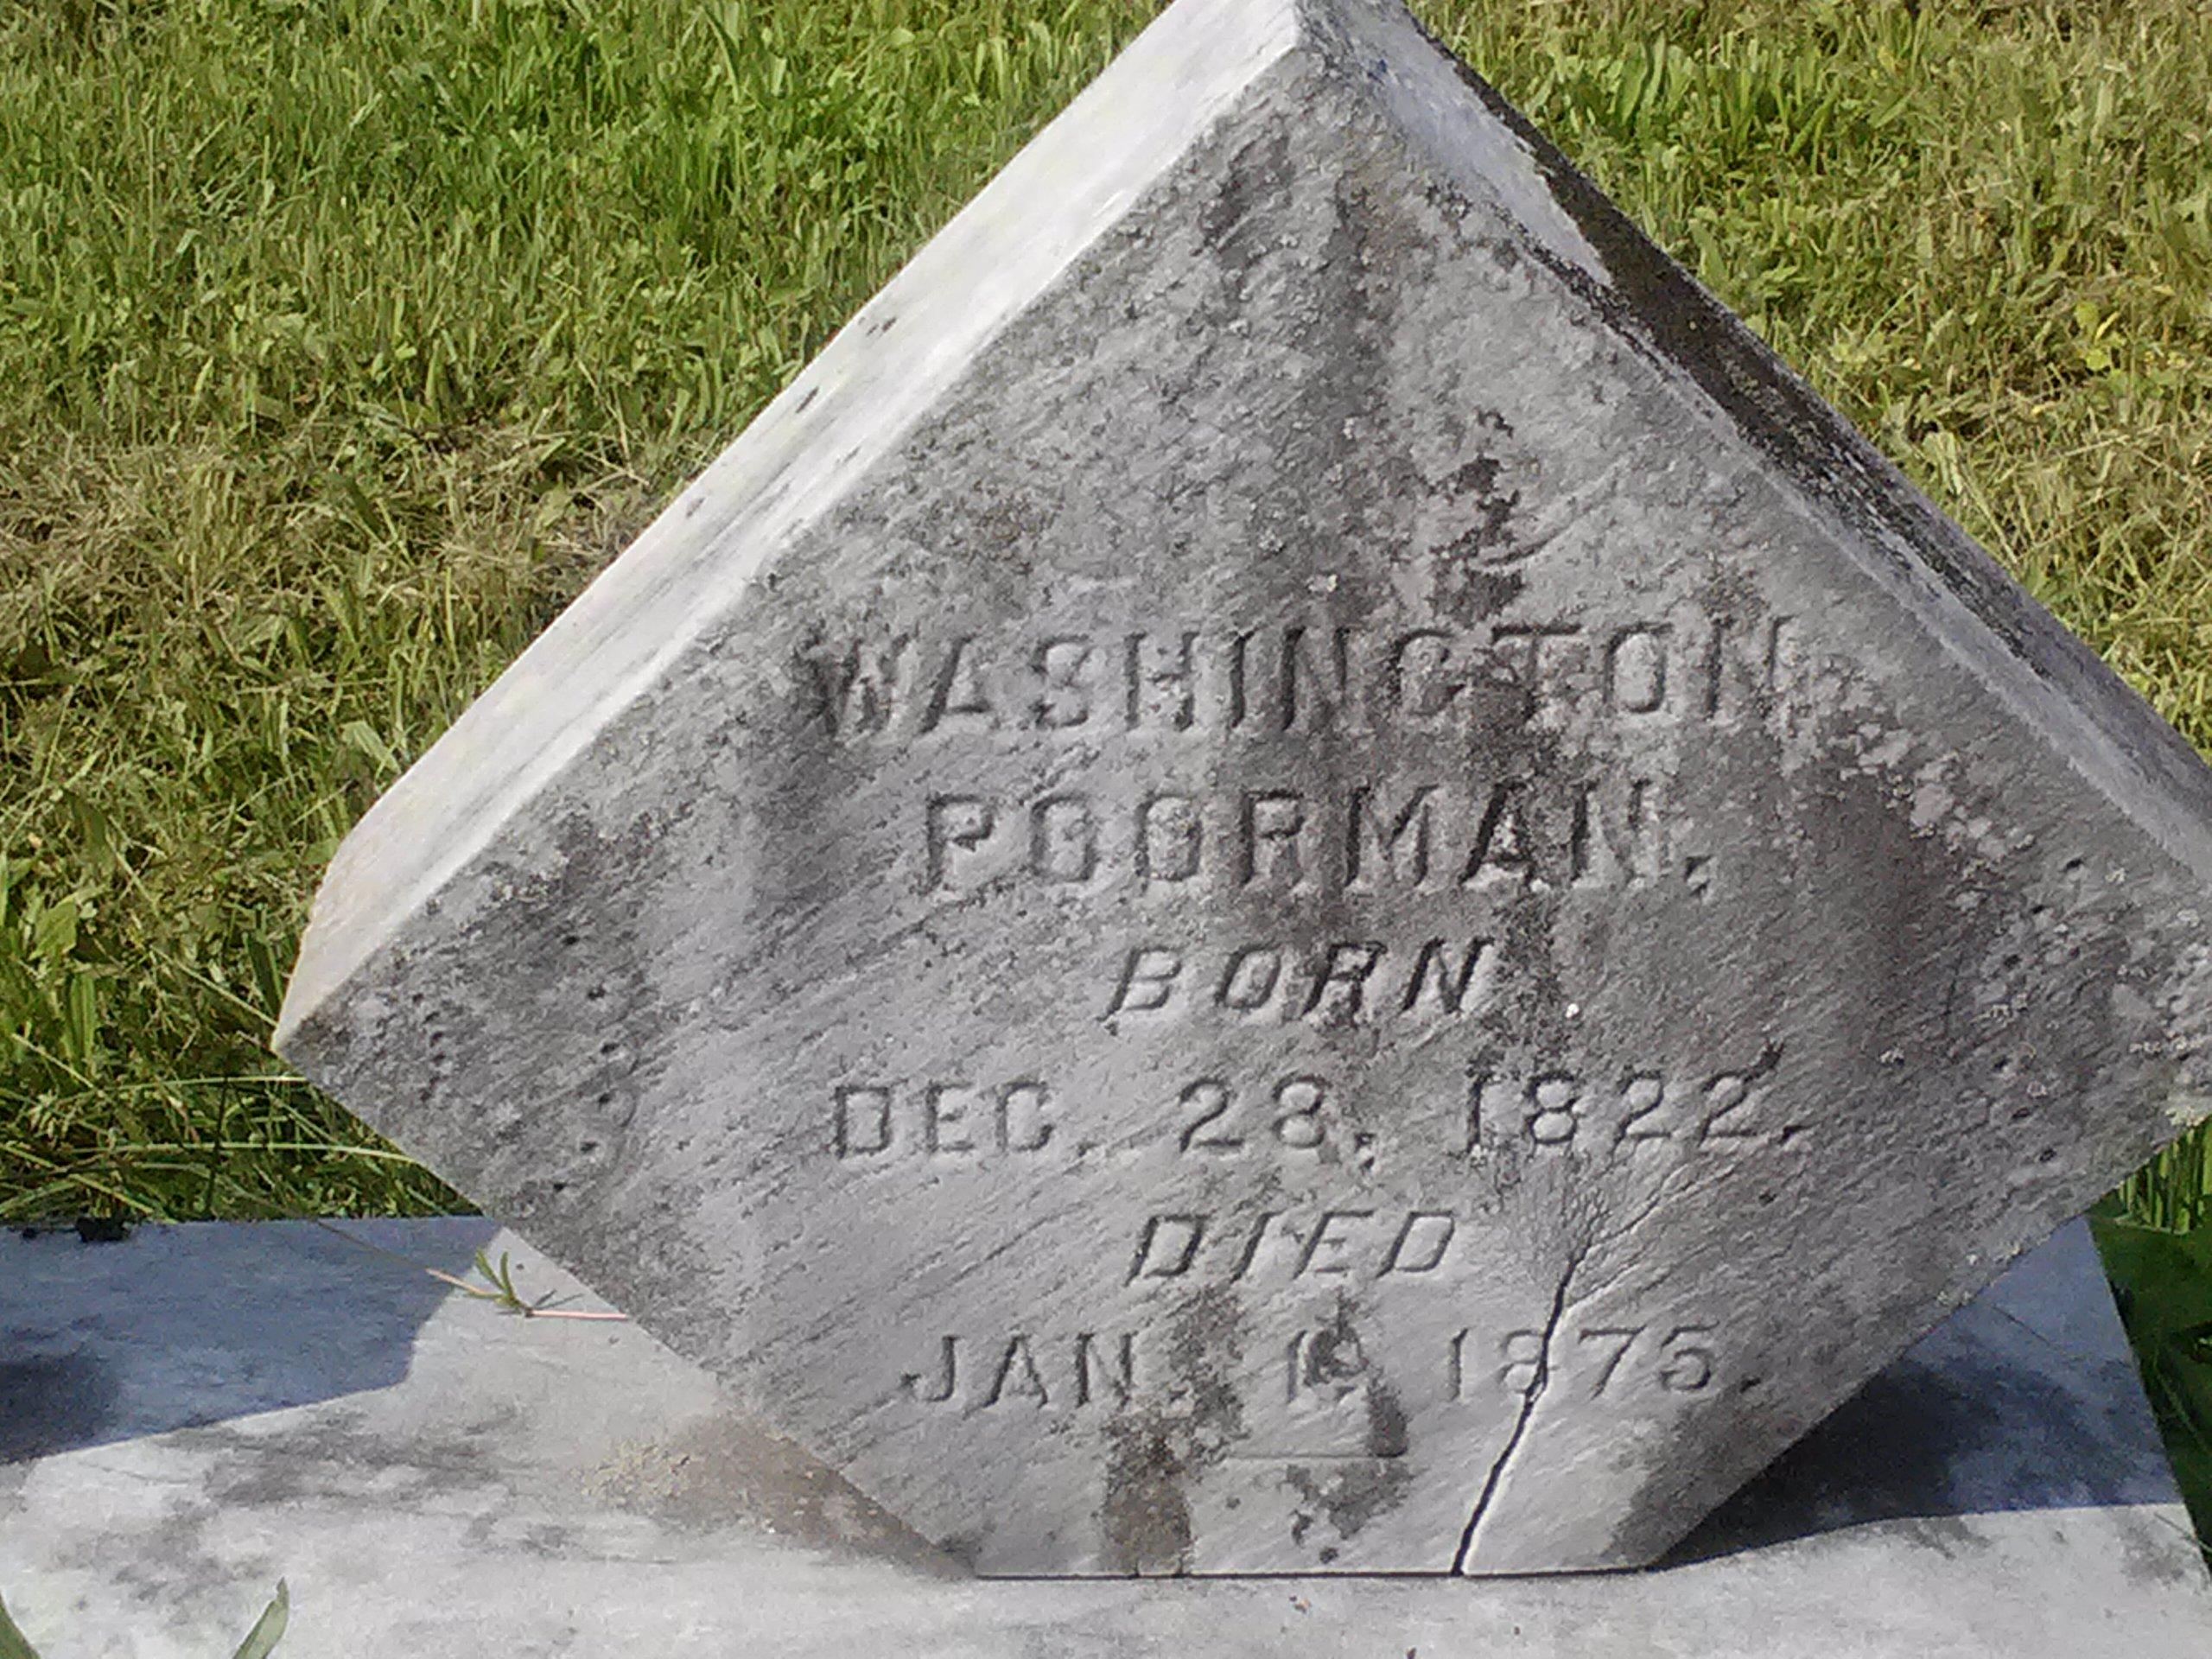 Poorman/2012-05-26_Washington_Poorman.jpg